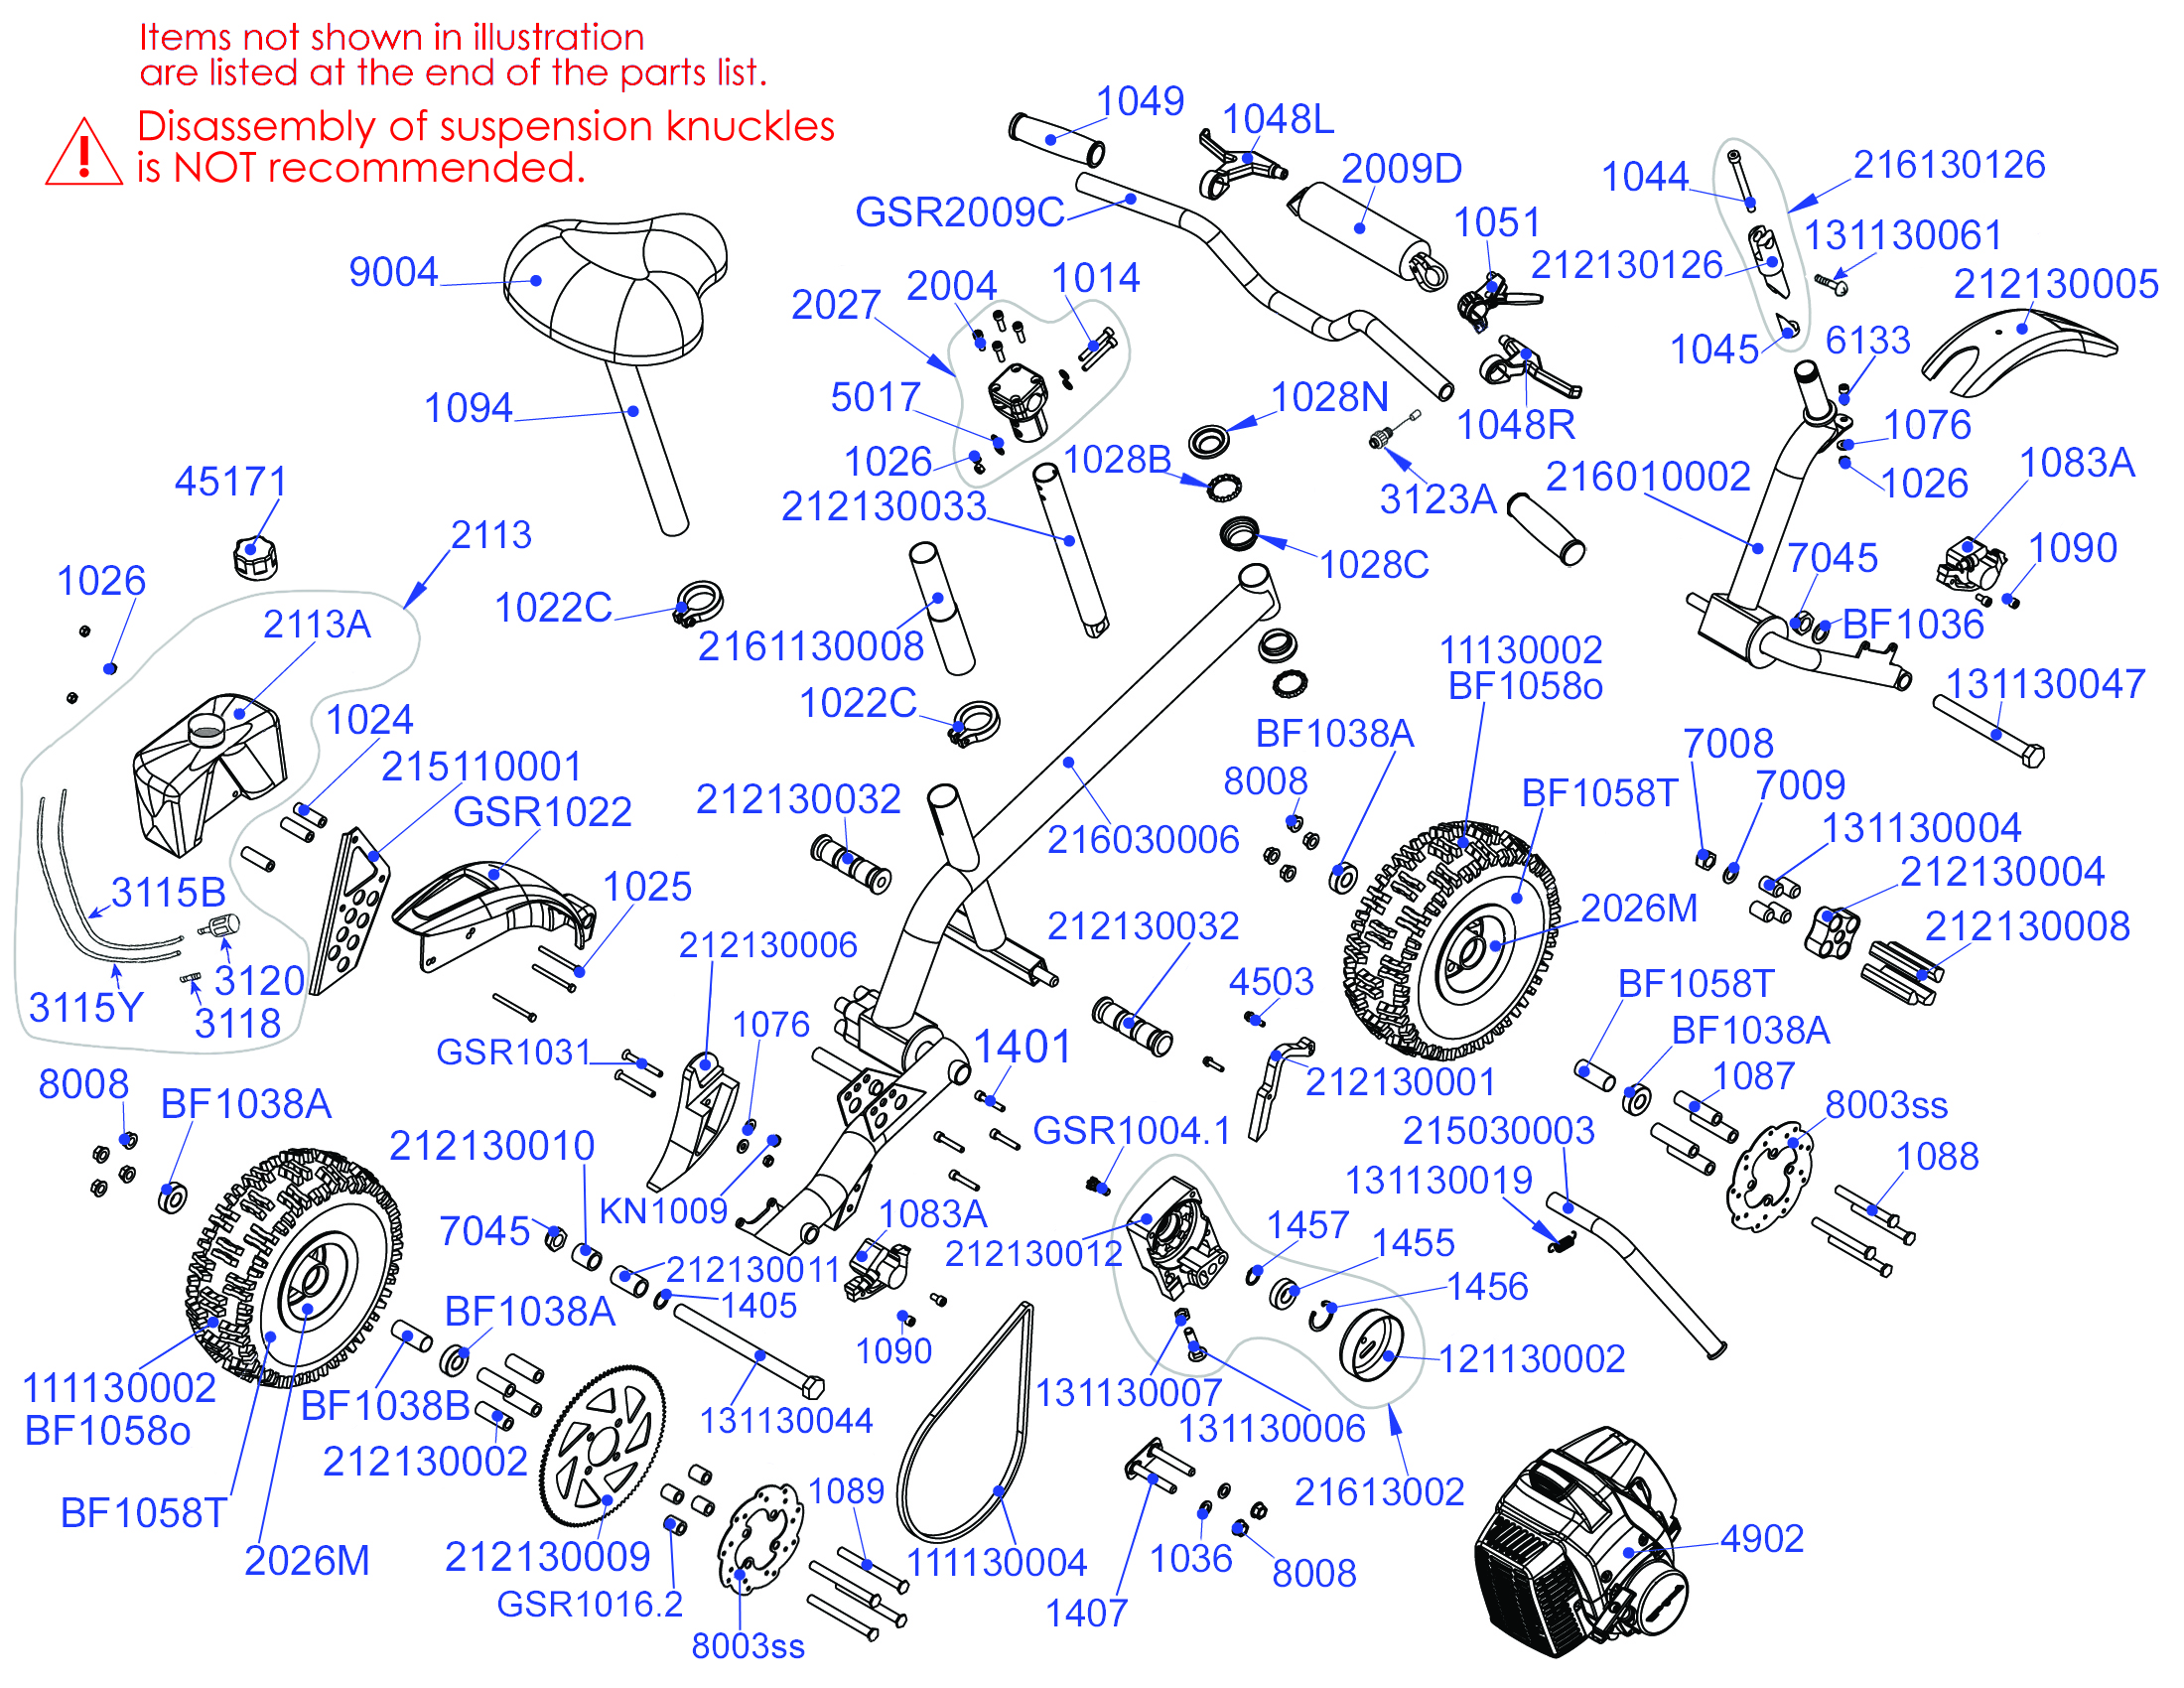 new-riot-exploded-view.jpg